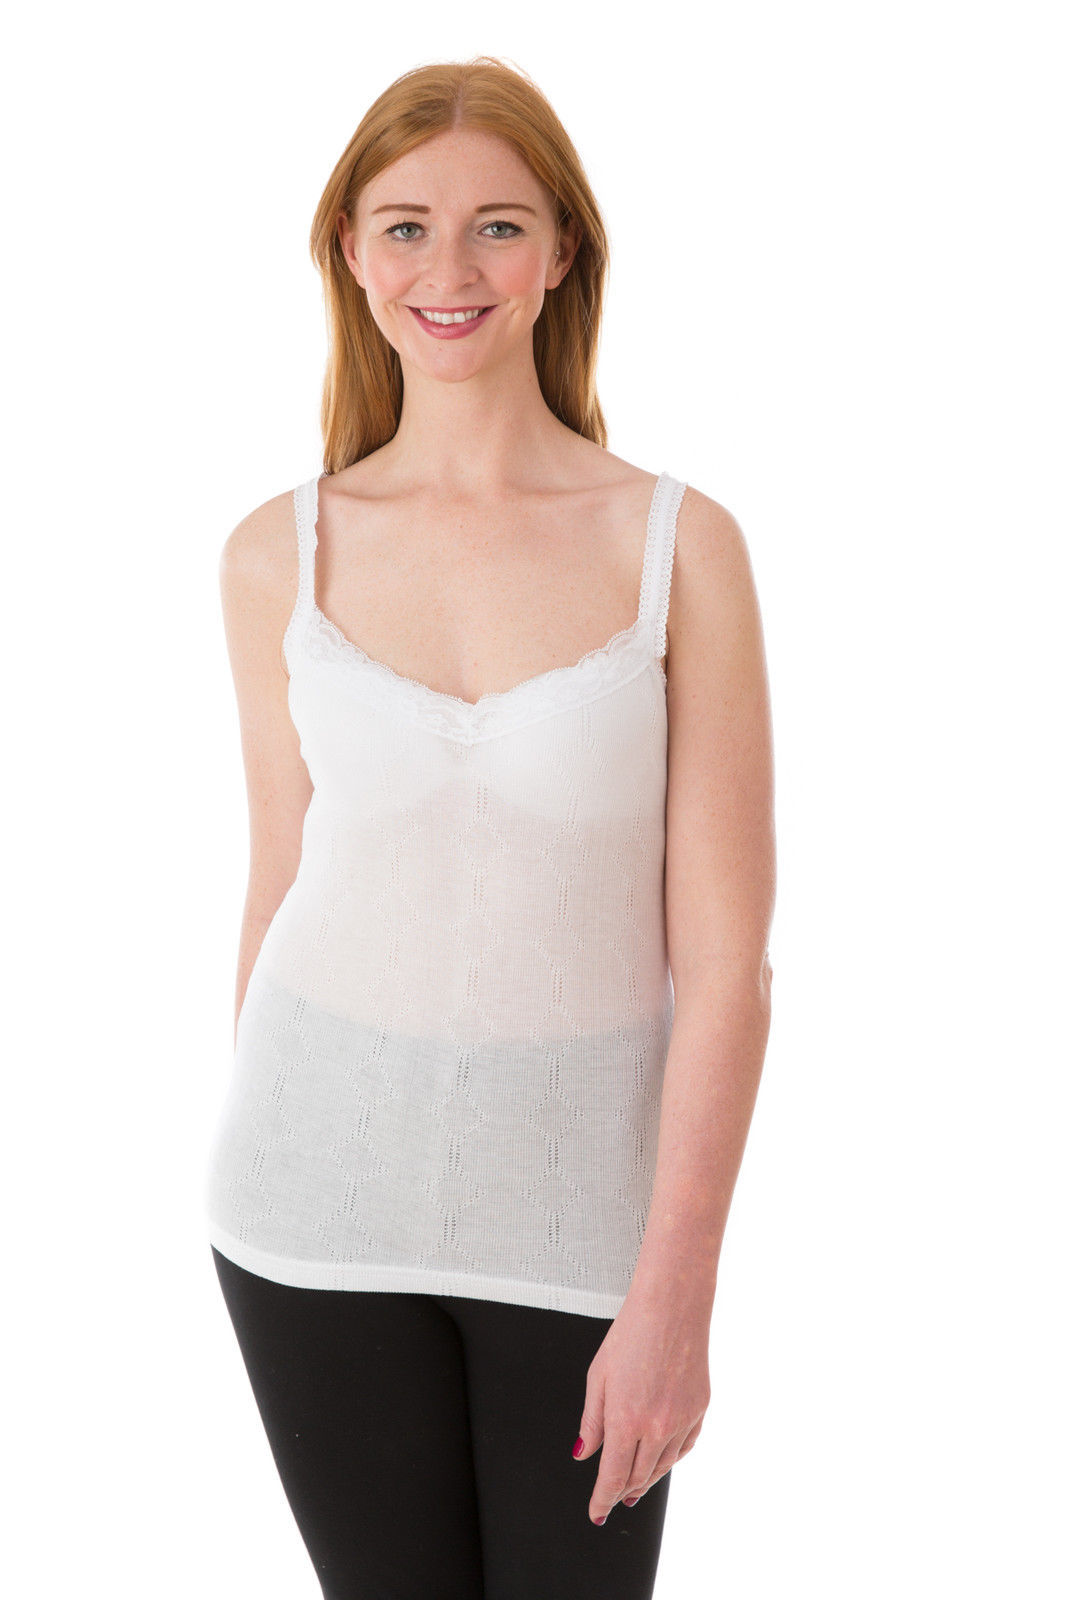 OCTAVE® 12 Pack Womens Thermal Underwear Sleeveless Camisole Vest